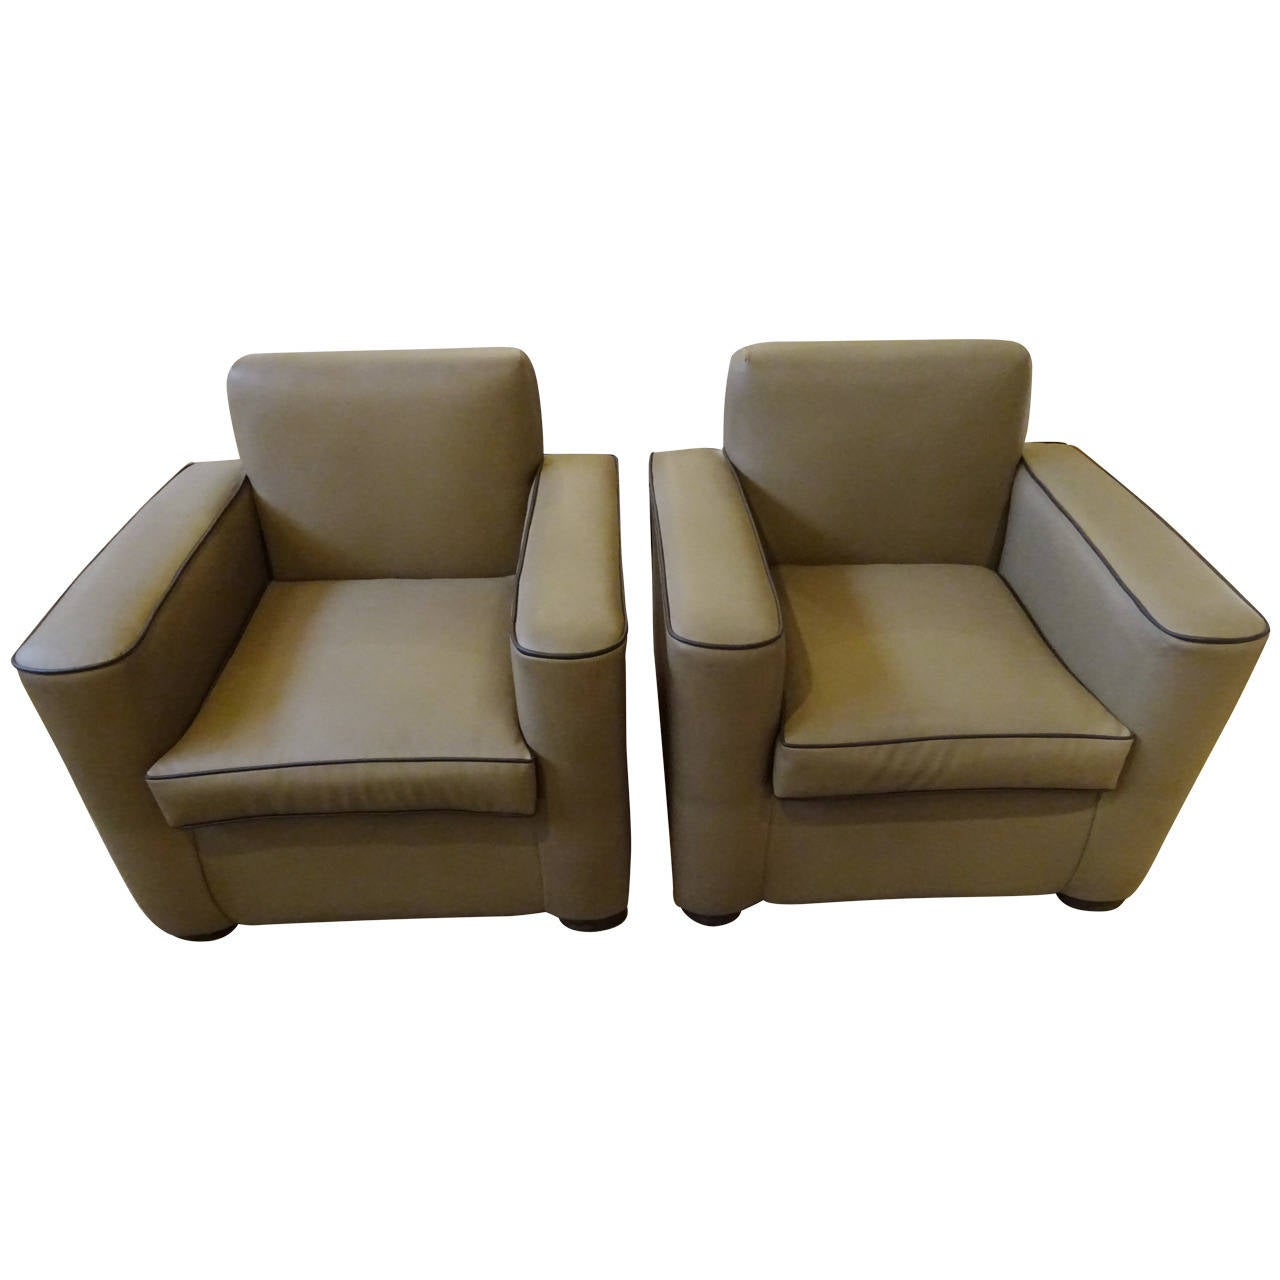 Art Deco Style Club Chairs At 1stdibs